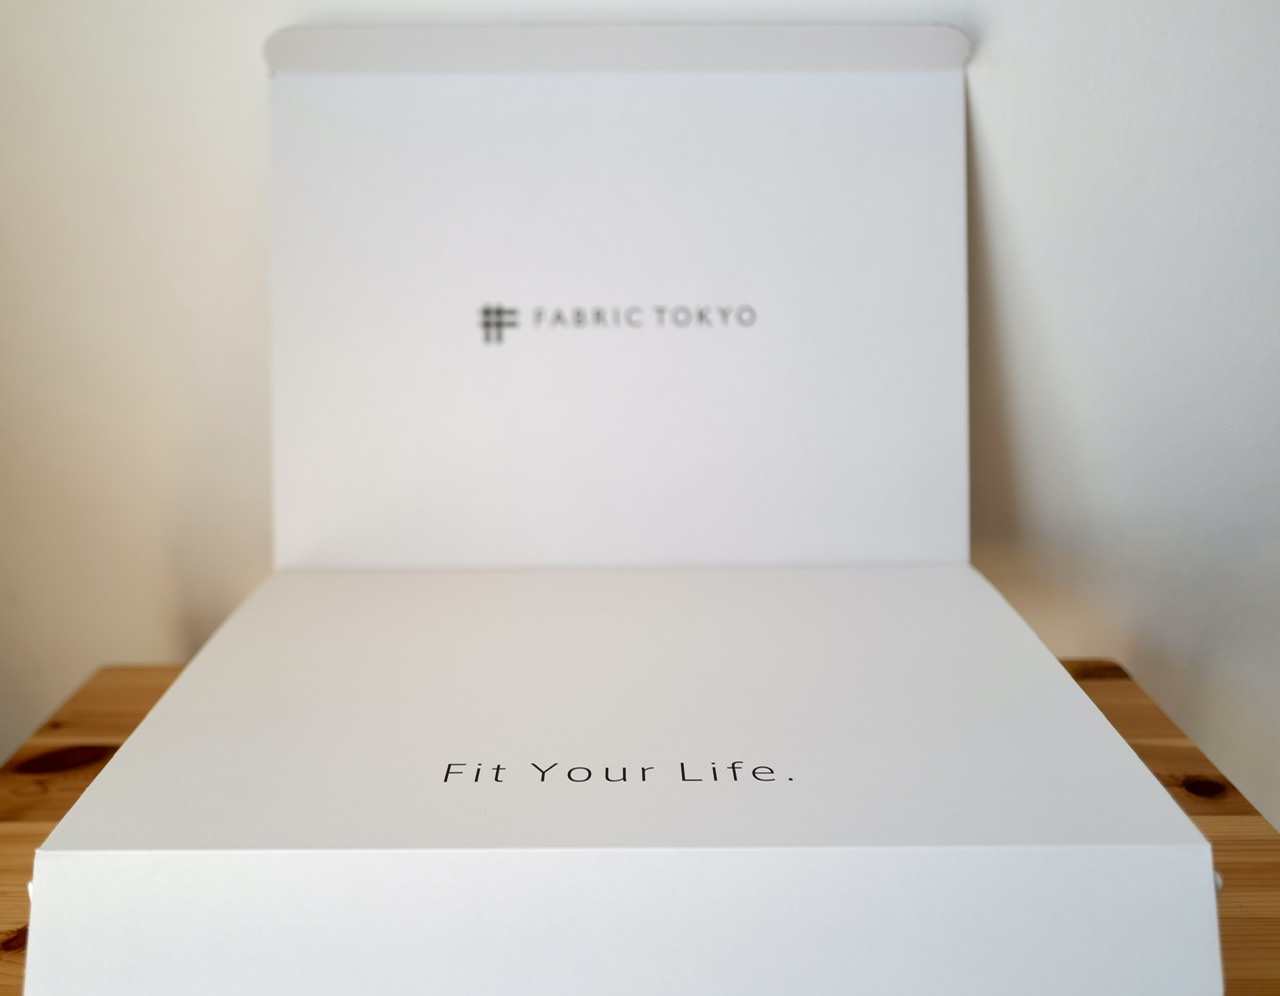 Fabric Tokyo Fit Your Life box